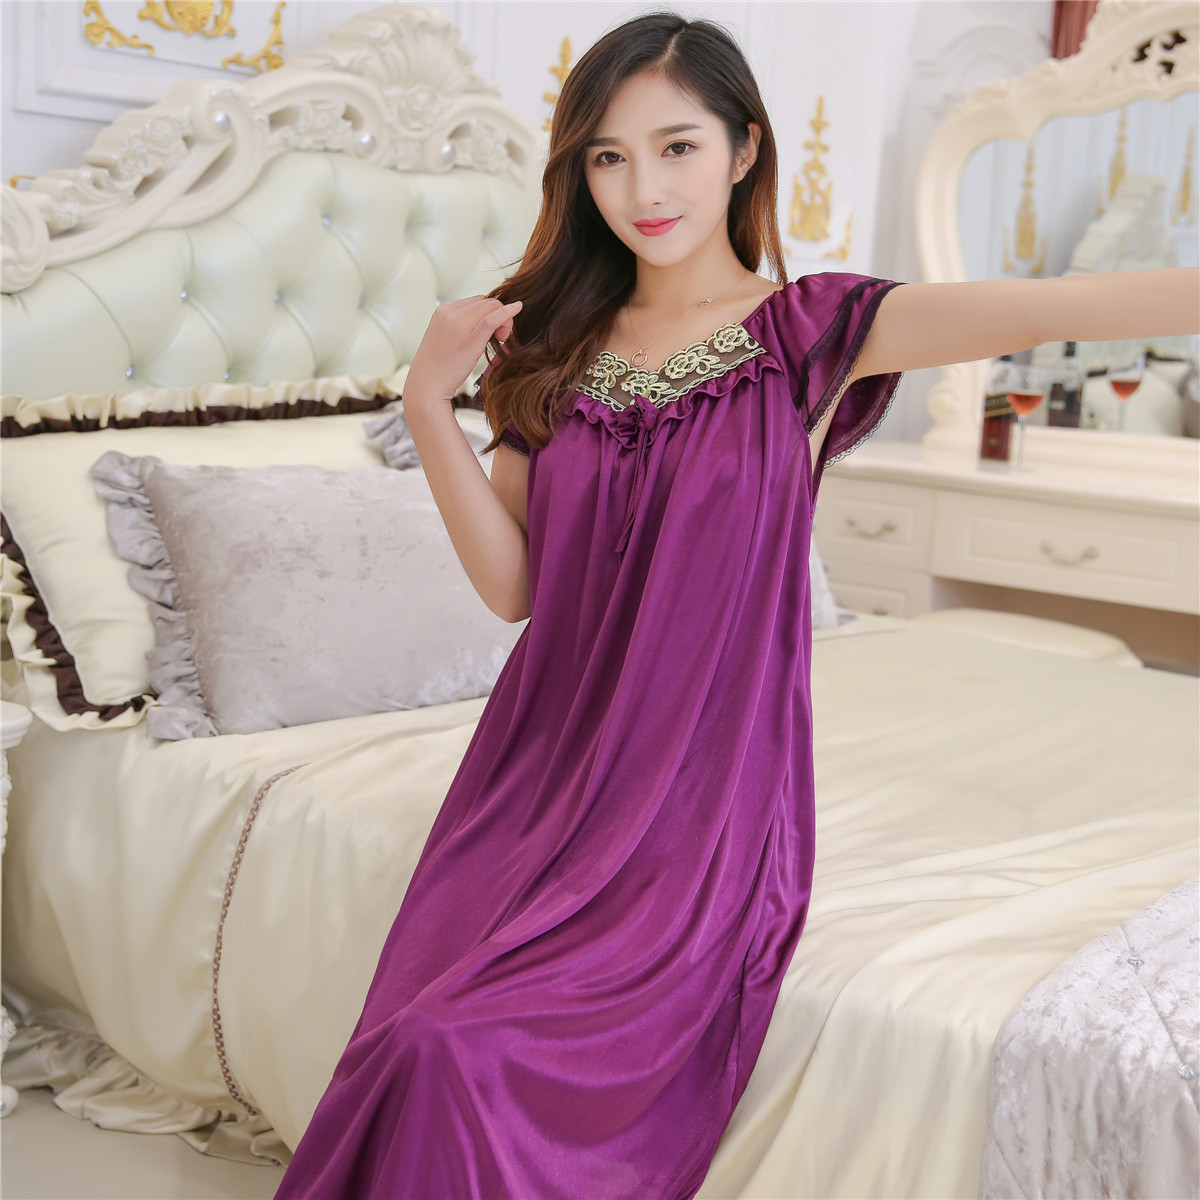 Lace Nightgowns Summer Ice Silk Nightgown Ms Mm Skirt Fat -8542